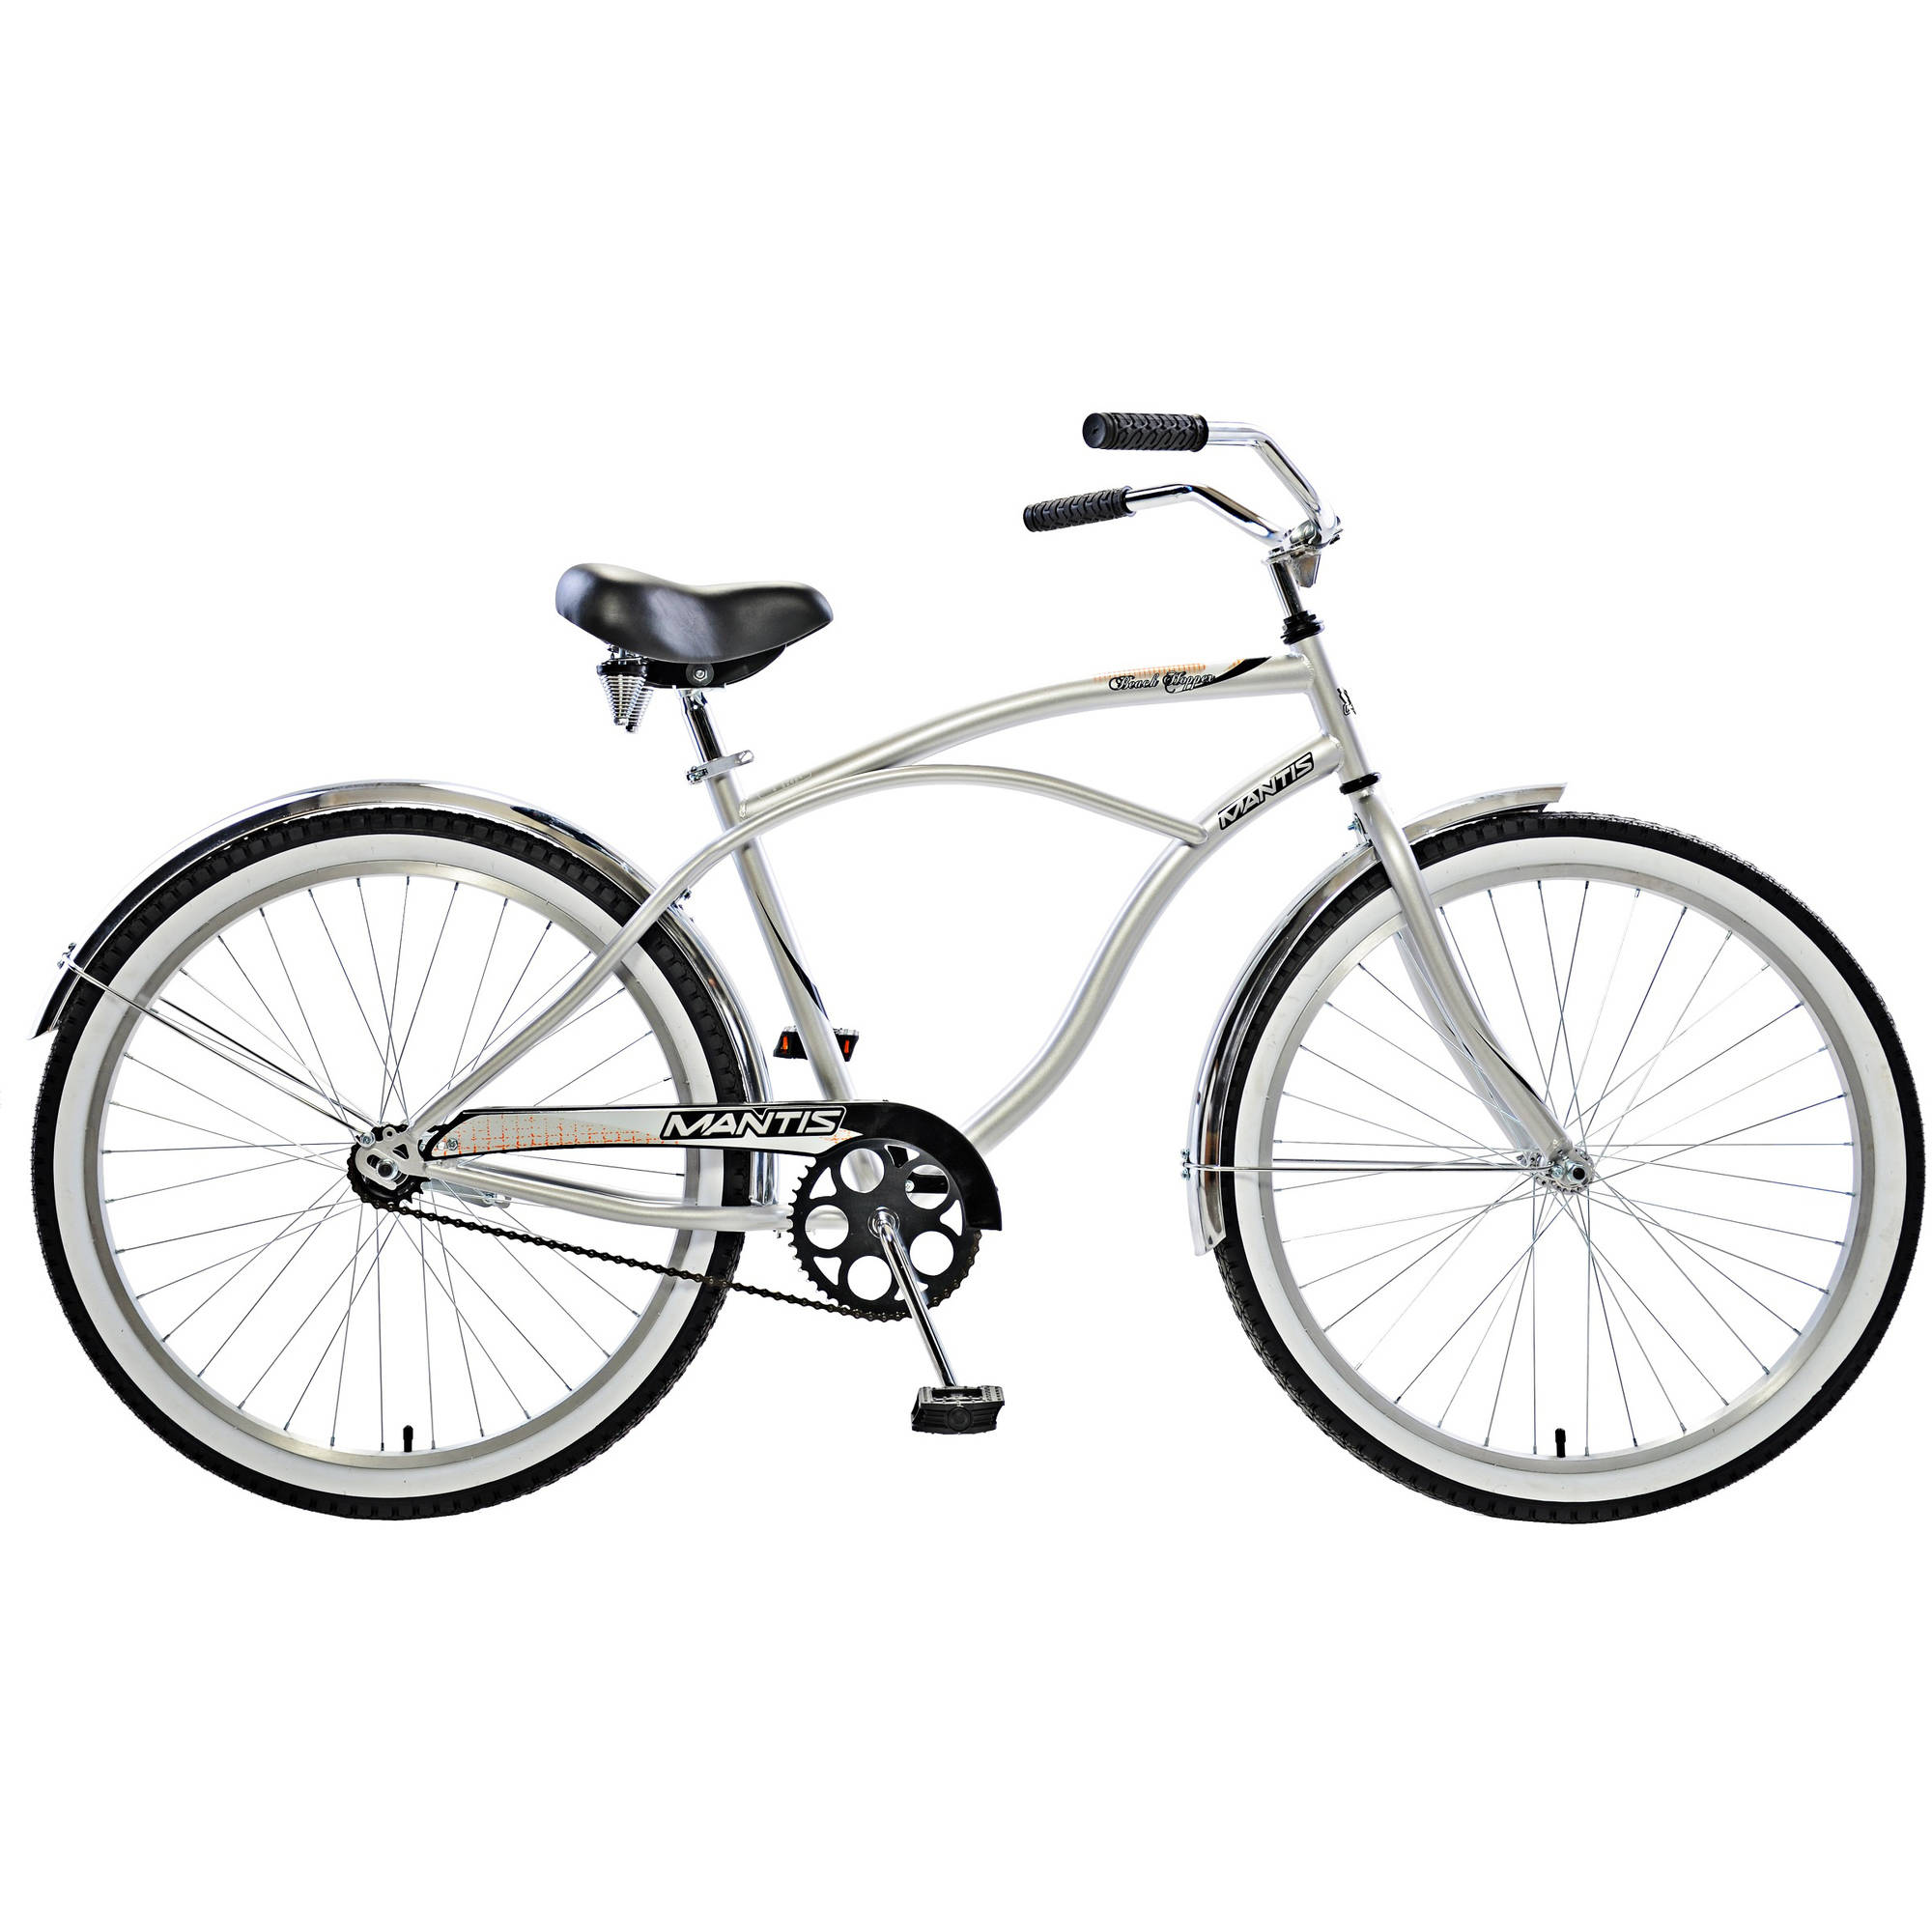 Mantis Beach Hopper M 26 Cruiser Bicycle